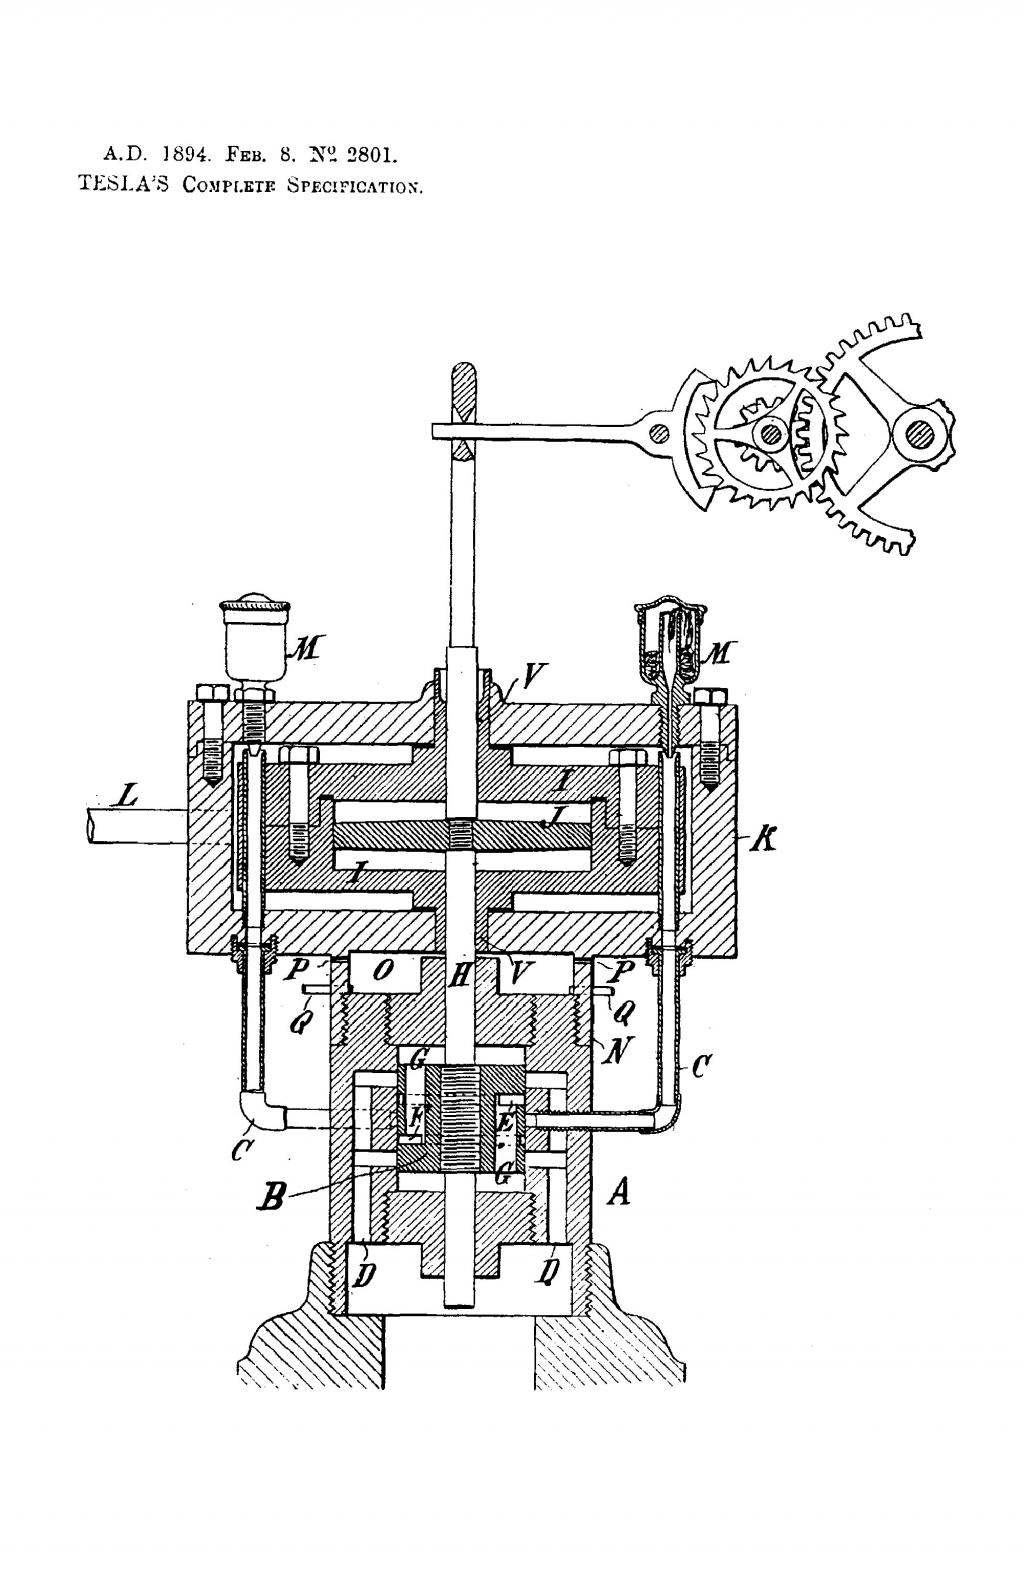 Nikola Tesla British Patent 2801 - Improvements in Reciprocating Engines and Means for Regulating the Period of the Same - Image 1